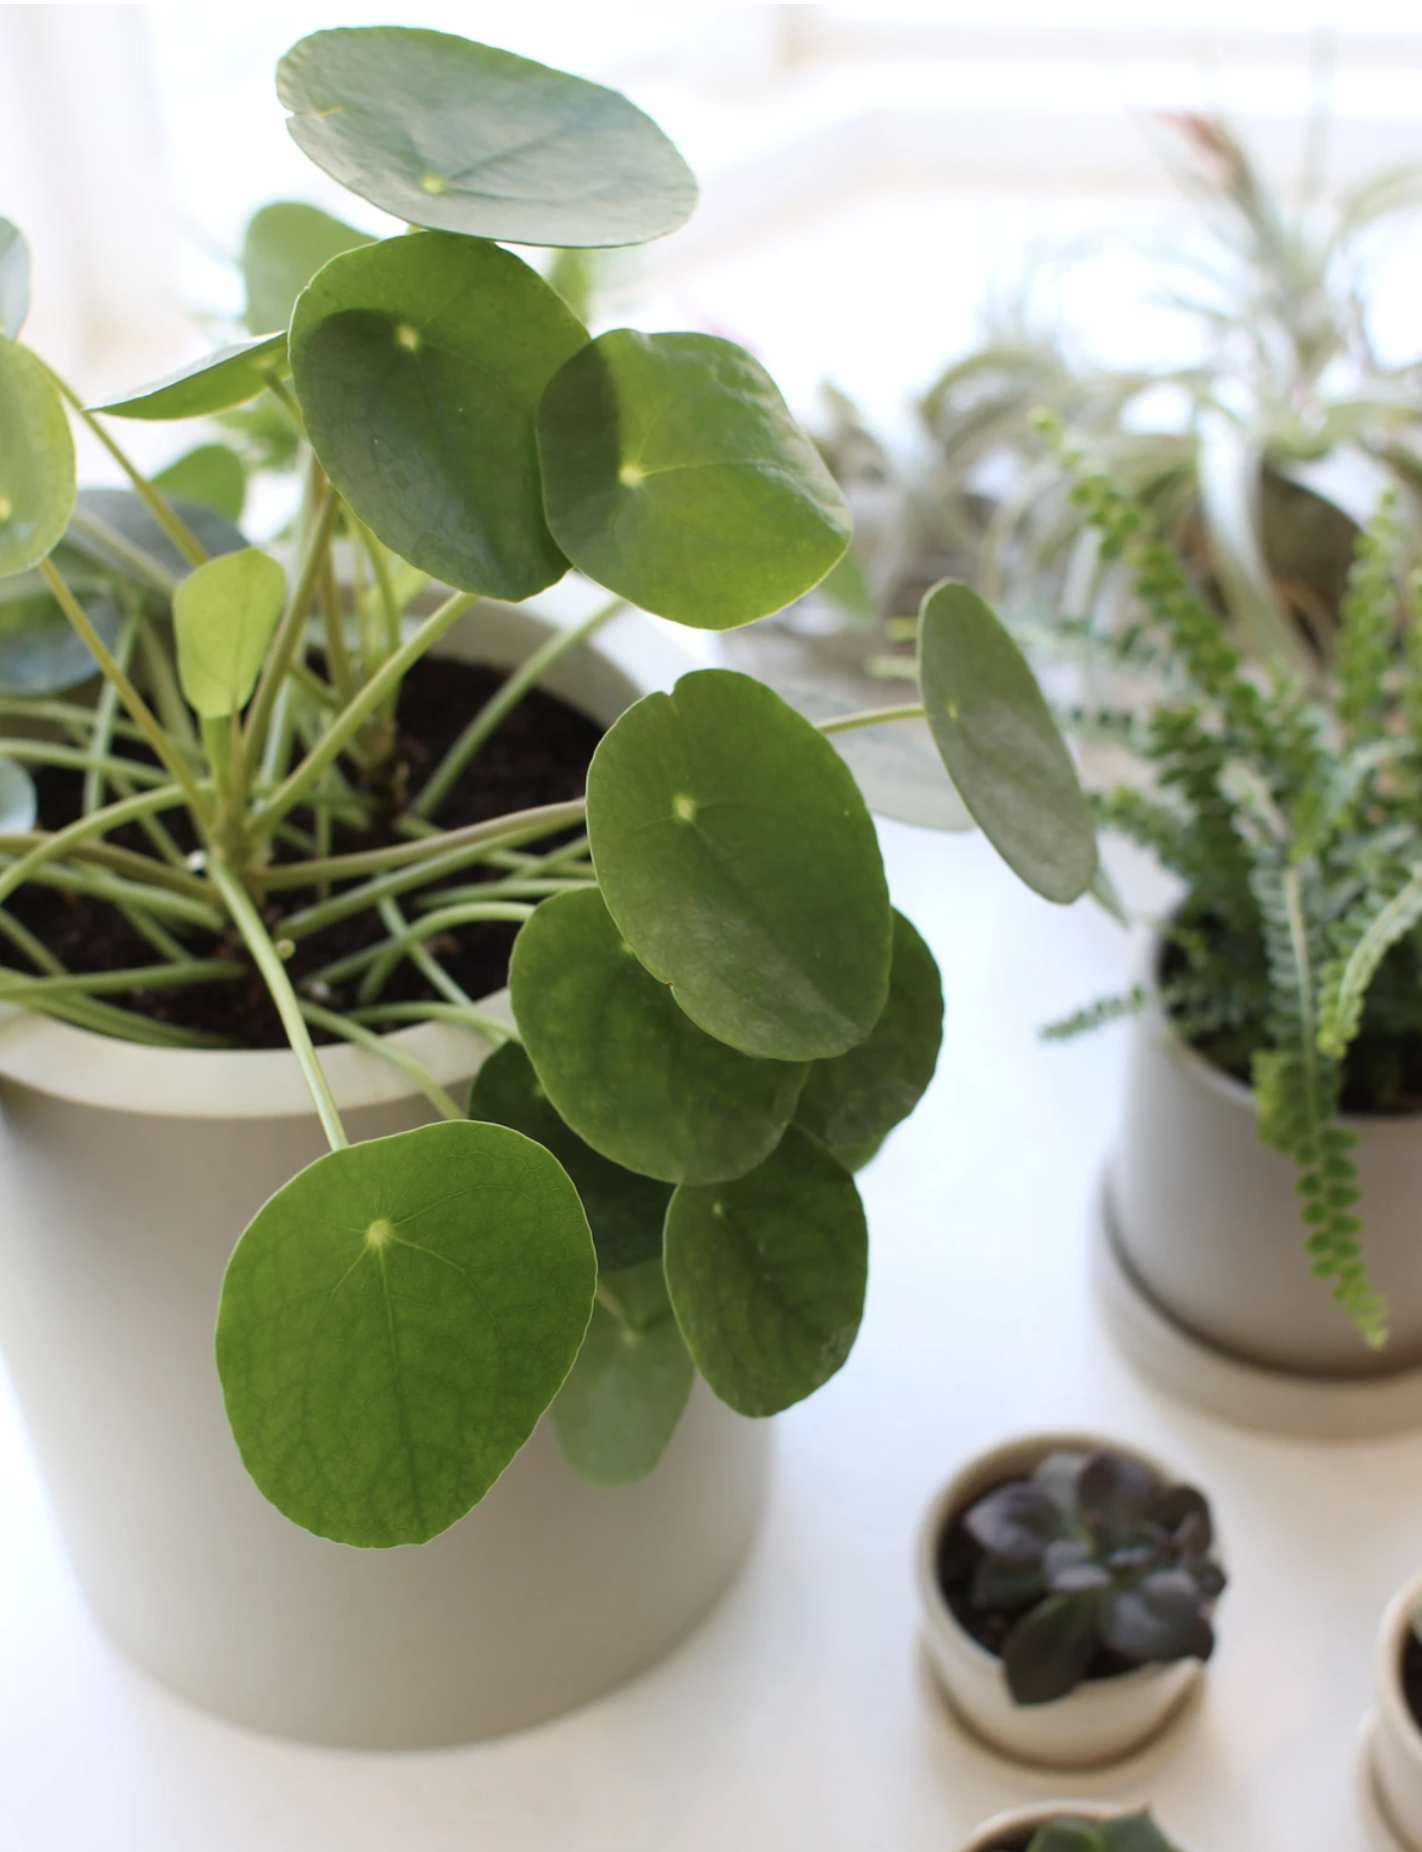 20 Trendy Dog Safe House Plants for 2021 feat. Chinese Money Plant - Image via The Sill